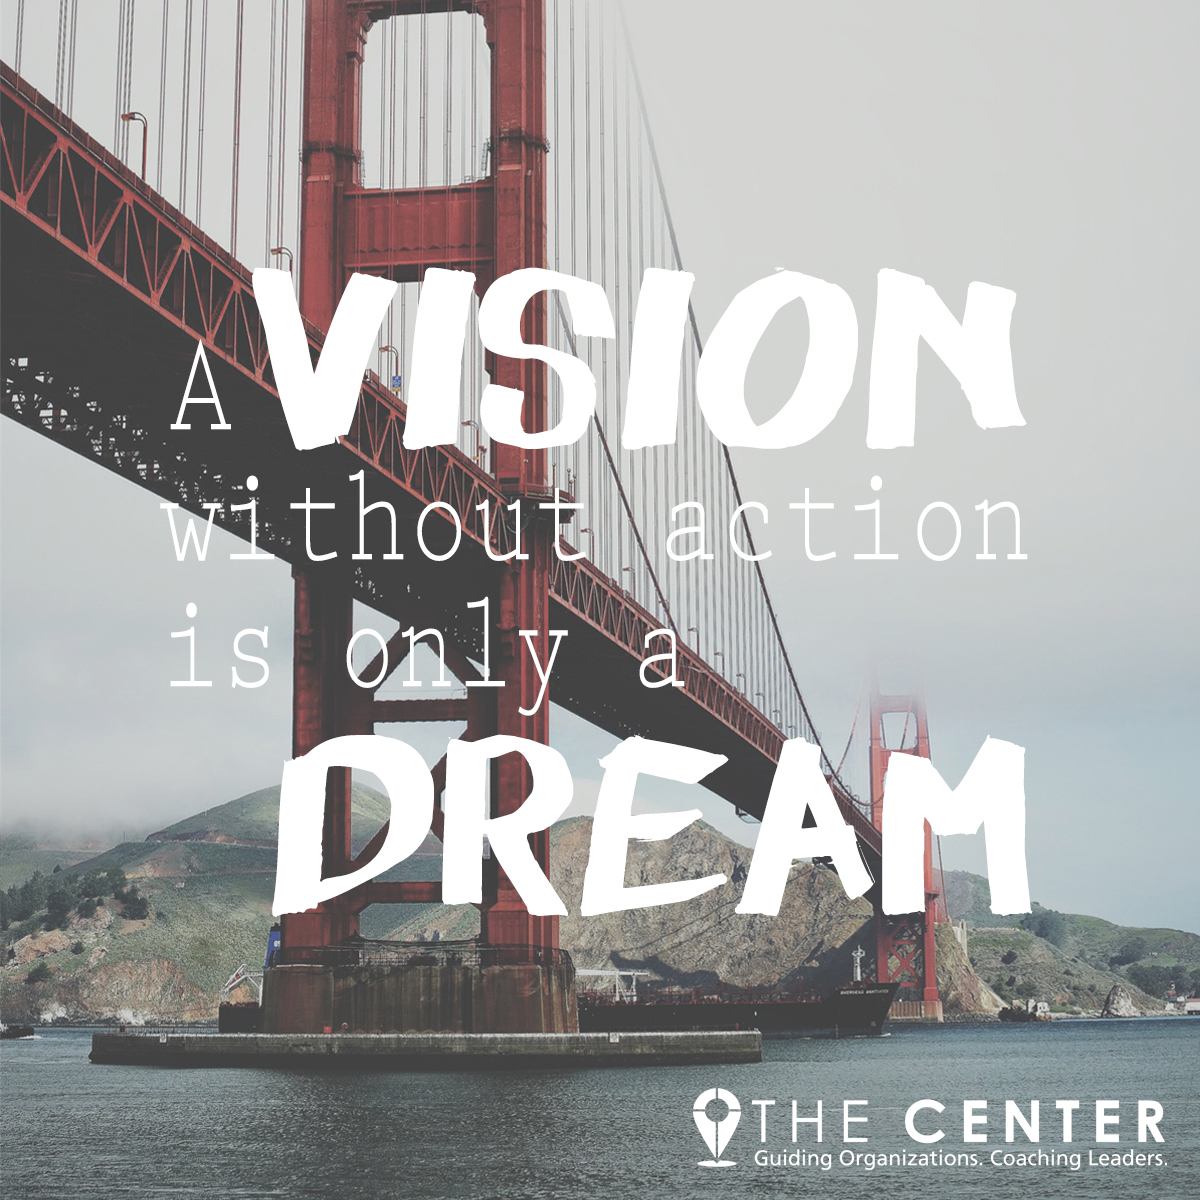 Vision without action is only a dream - momentum - The Center consulting